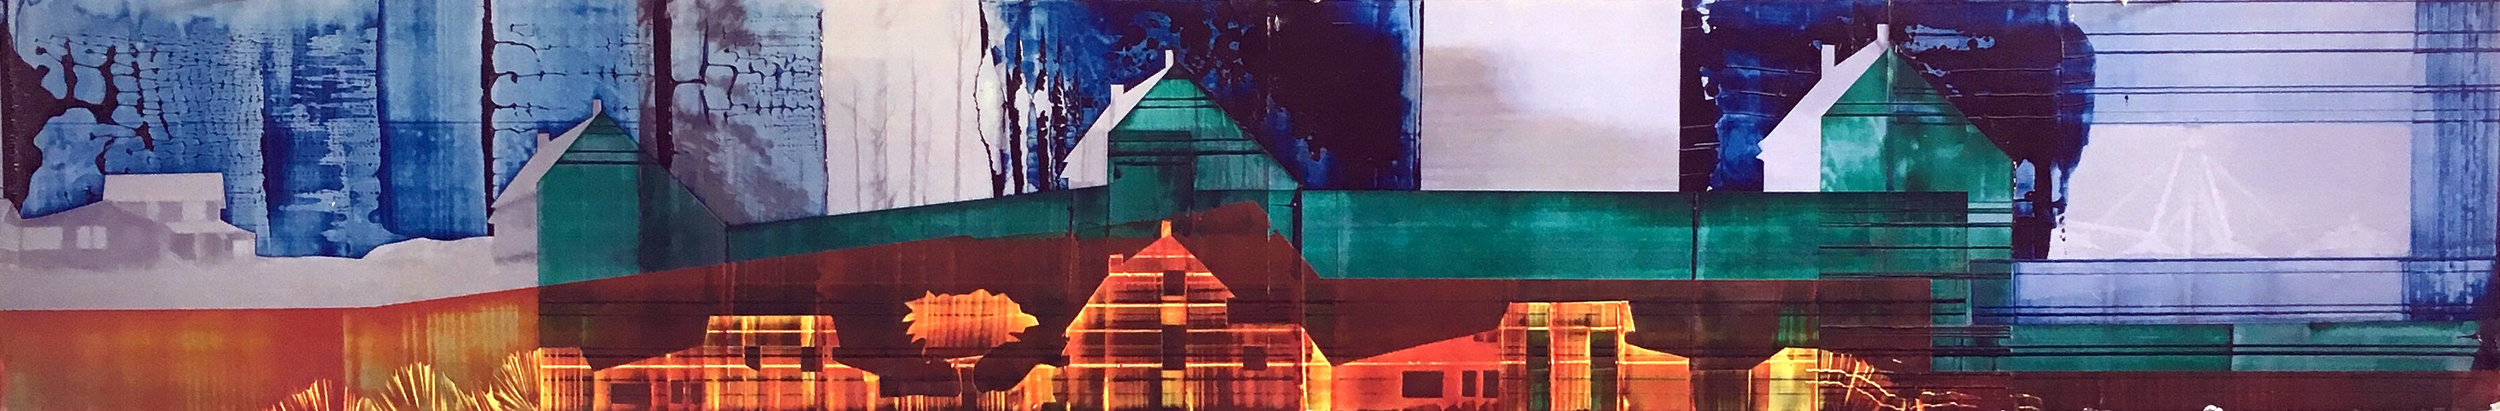 Green House, 12 x 60 inches / 30.5 x 152.4 cm, galkyd oil on chromogenic print, 2017